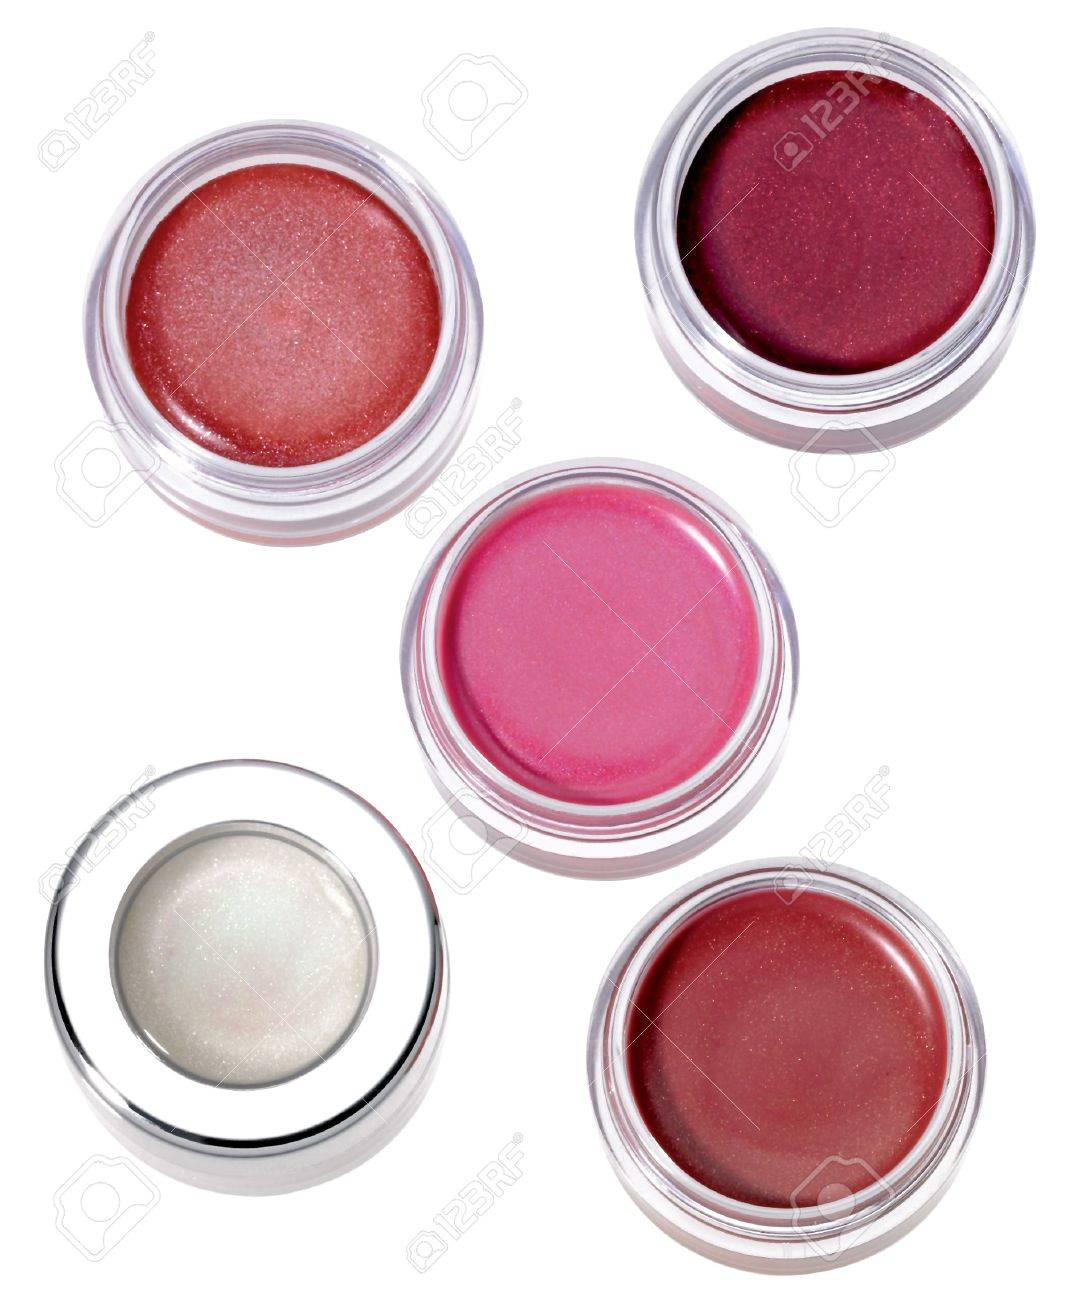 Multy-colored lip gloss in round silver plastic containers on white background